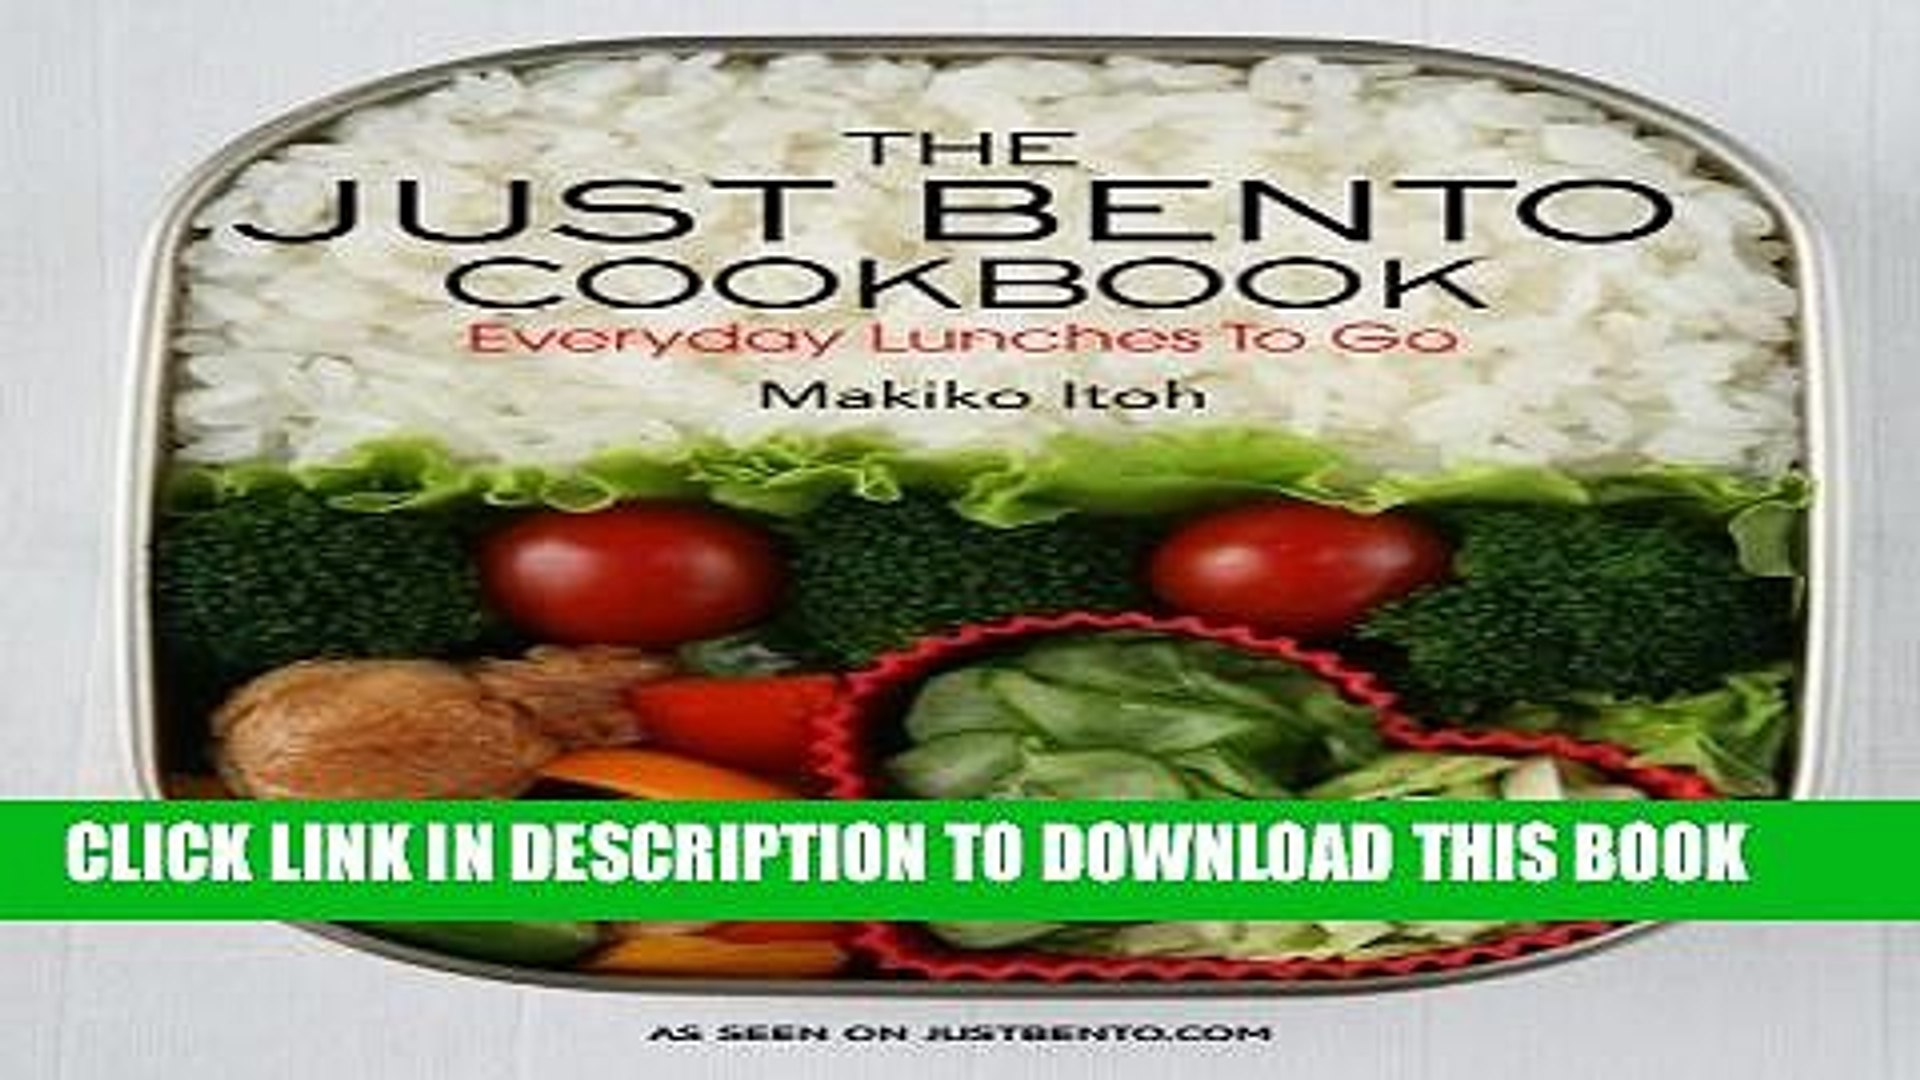 [PDF] The Just Bento Cookbook: Everyday Lunches to Go Popular Online